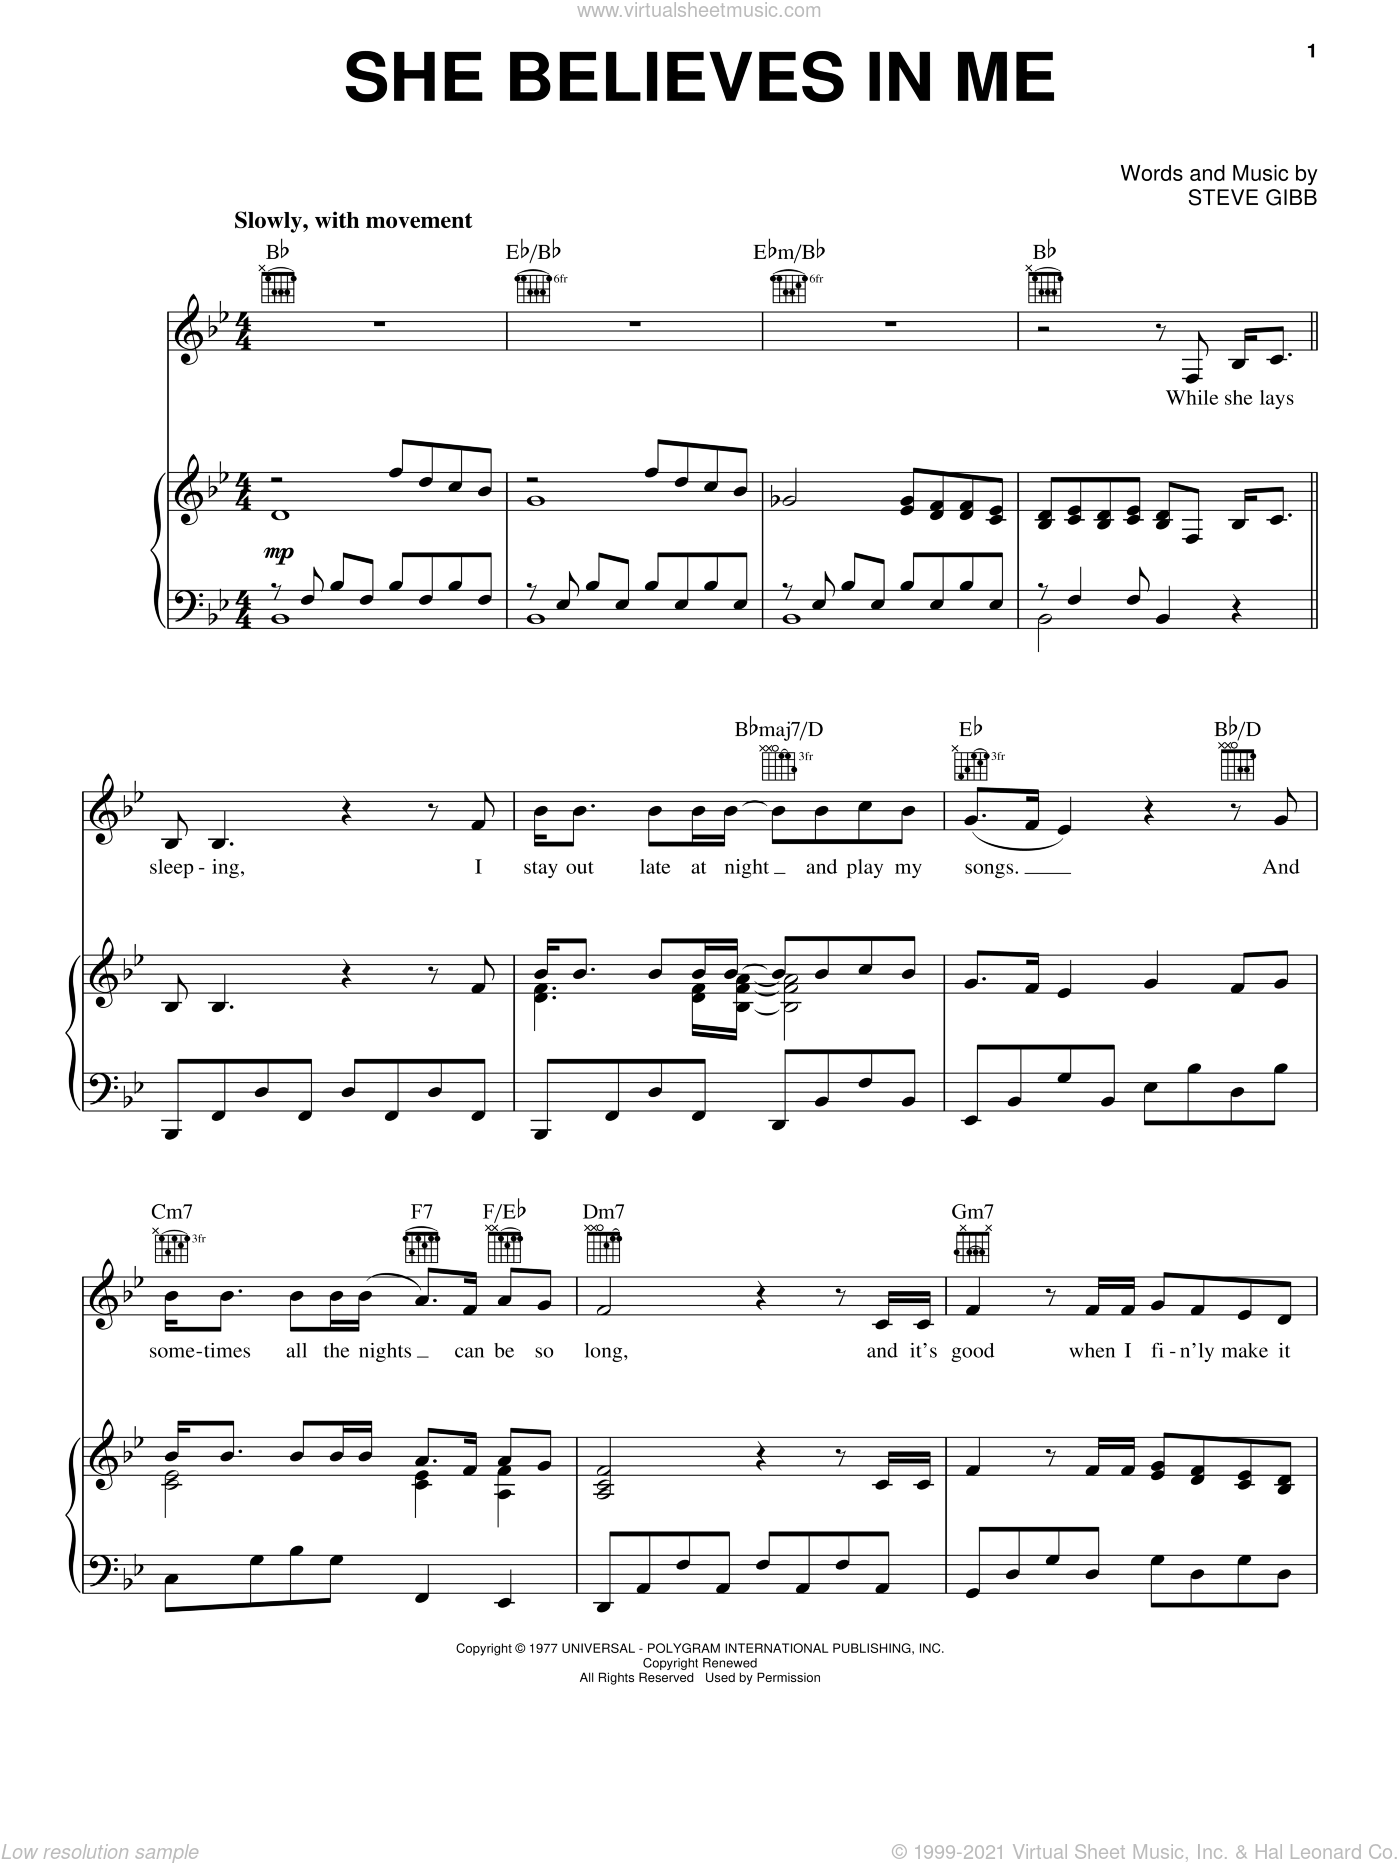 She Believes In Me sheet music for voice, piano or guitar by Steve Gibb